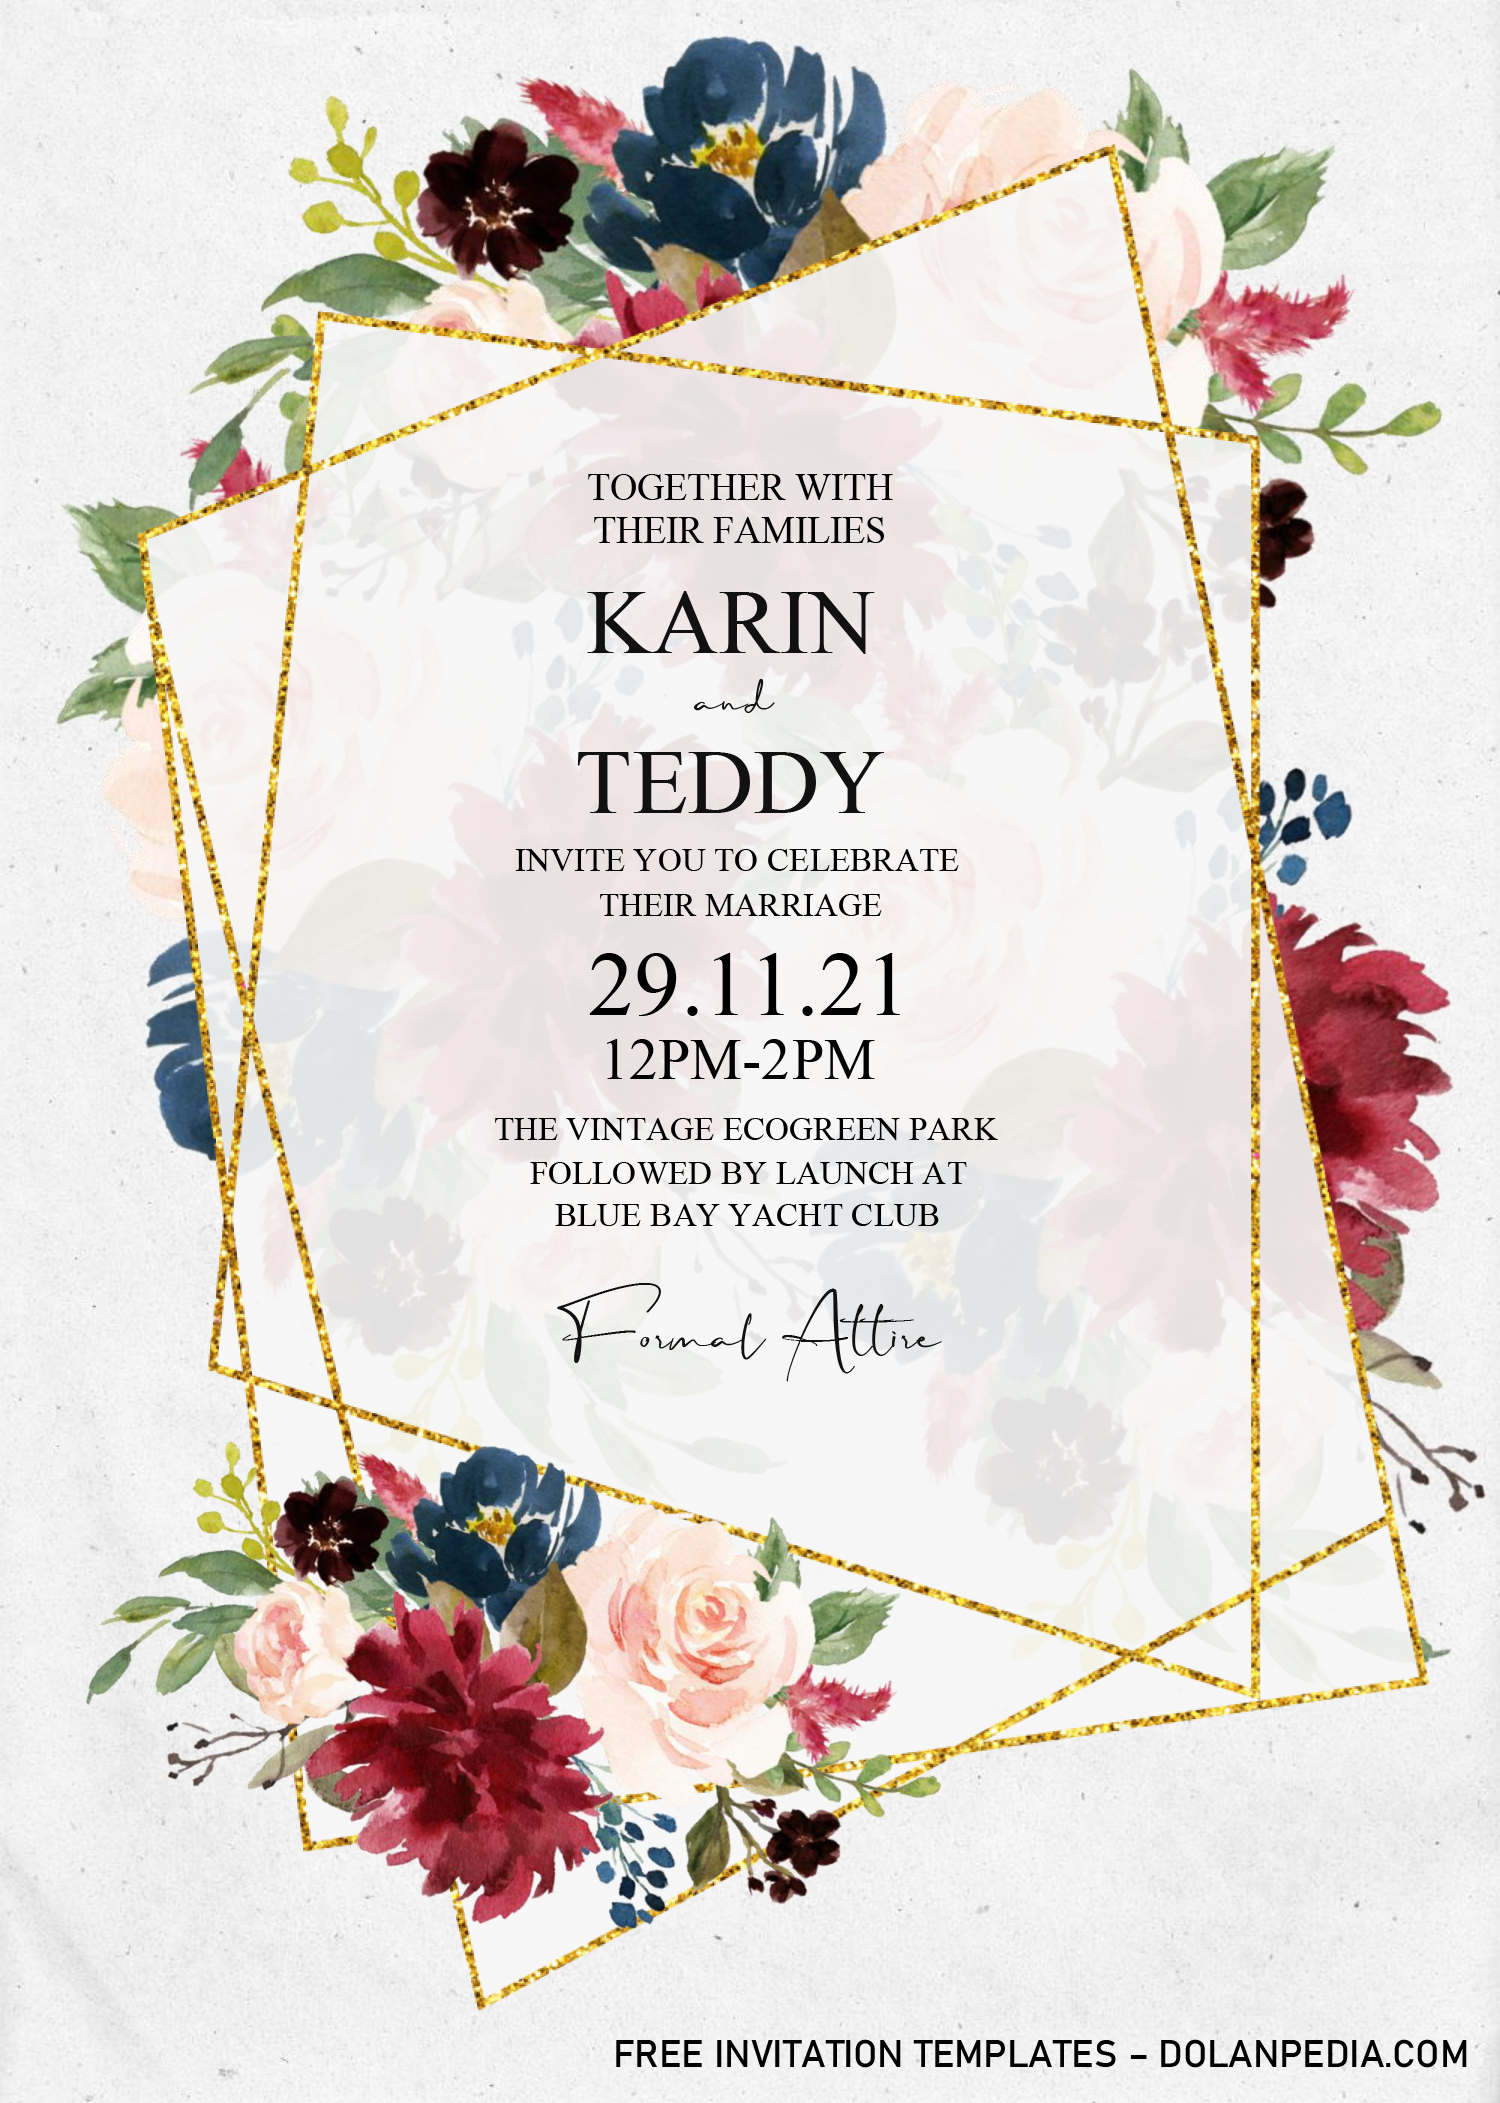 Floral And Gold Invitation Templates Editable With Ms Word Free Printable Invitations Templates Gold Invitations Invitation Template - ms word invitation templates free download